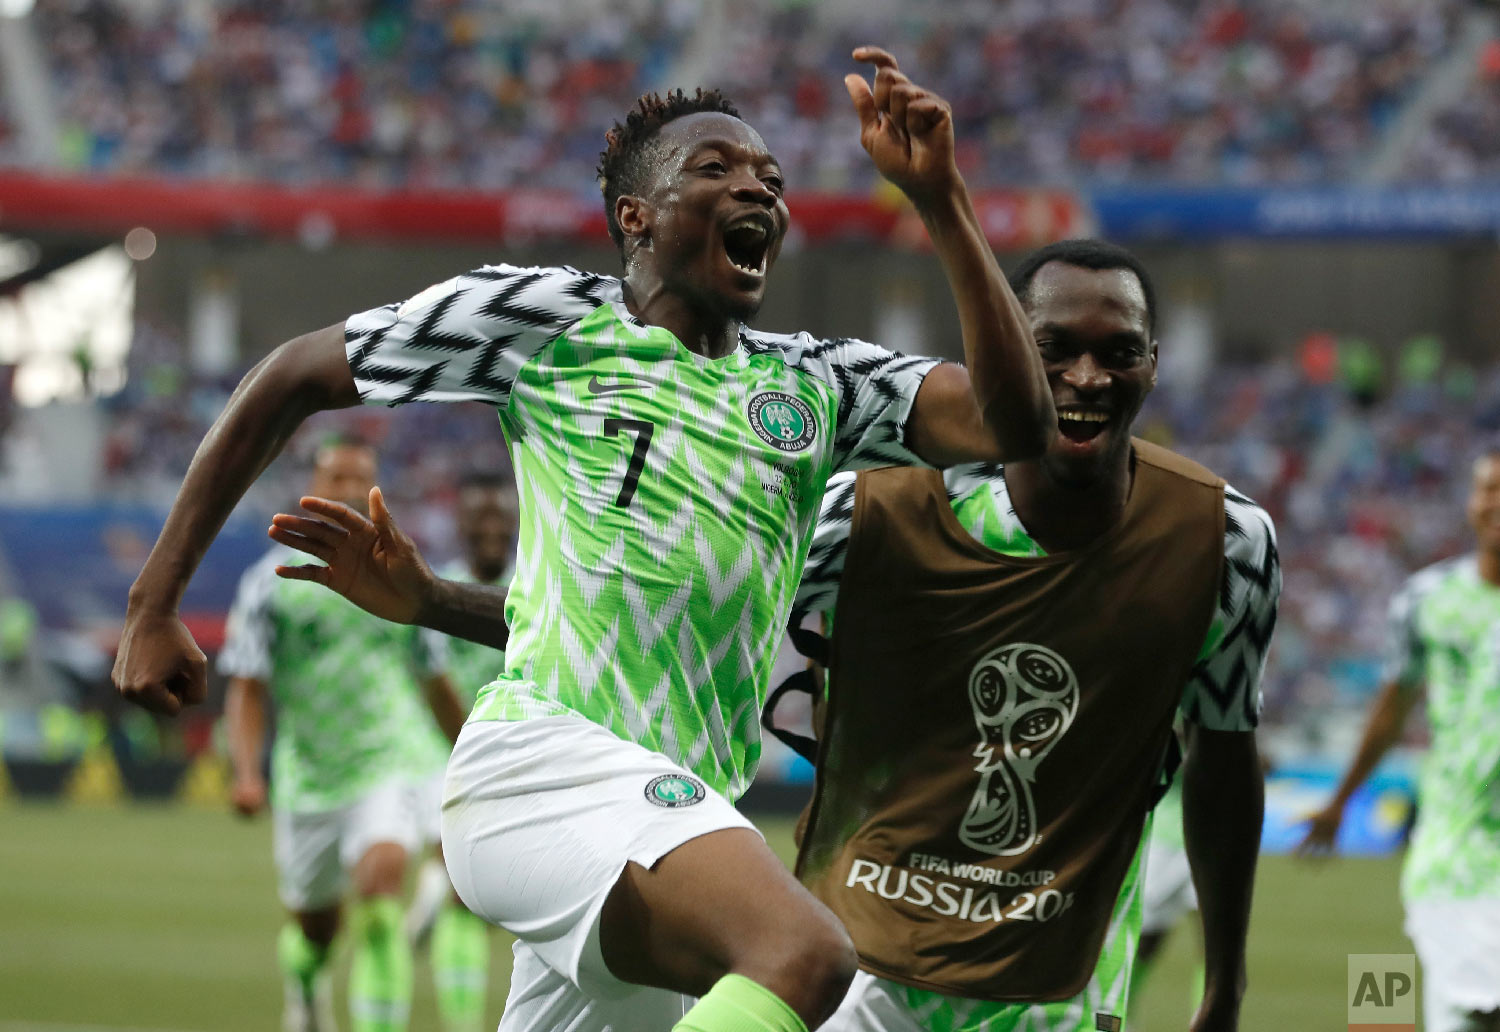 Nigeria's Ahmed Musa celebrates his team's second goal during the group D match between Nigeria and Iceland at the 2018 soccer World Cup in the Volgograd Arena in Volgograd, Russia, Friday, June 22, 2018. (AP Photo/Darko Vojinovic)